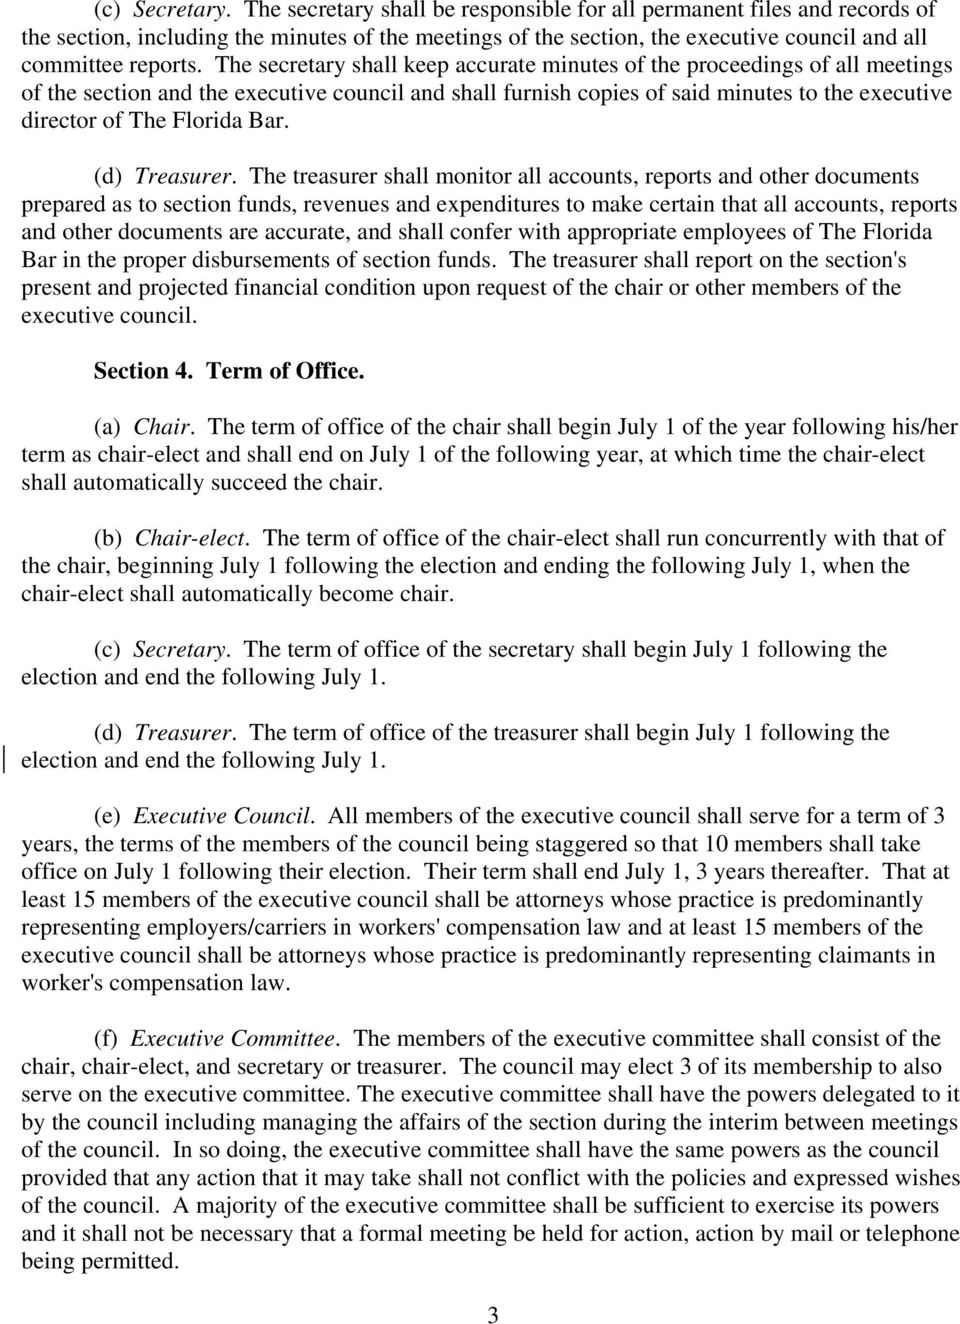 The secretary shall keep accurate minutes of the proceedings of all meetings of the section and the executive council and shall furnish copies of said minutes to the executive director of The Florida